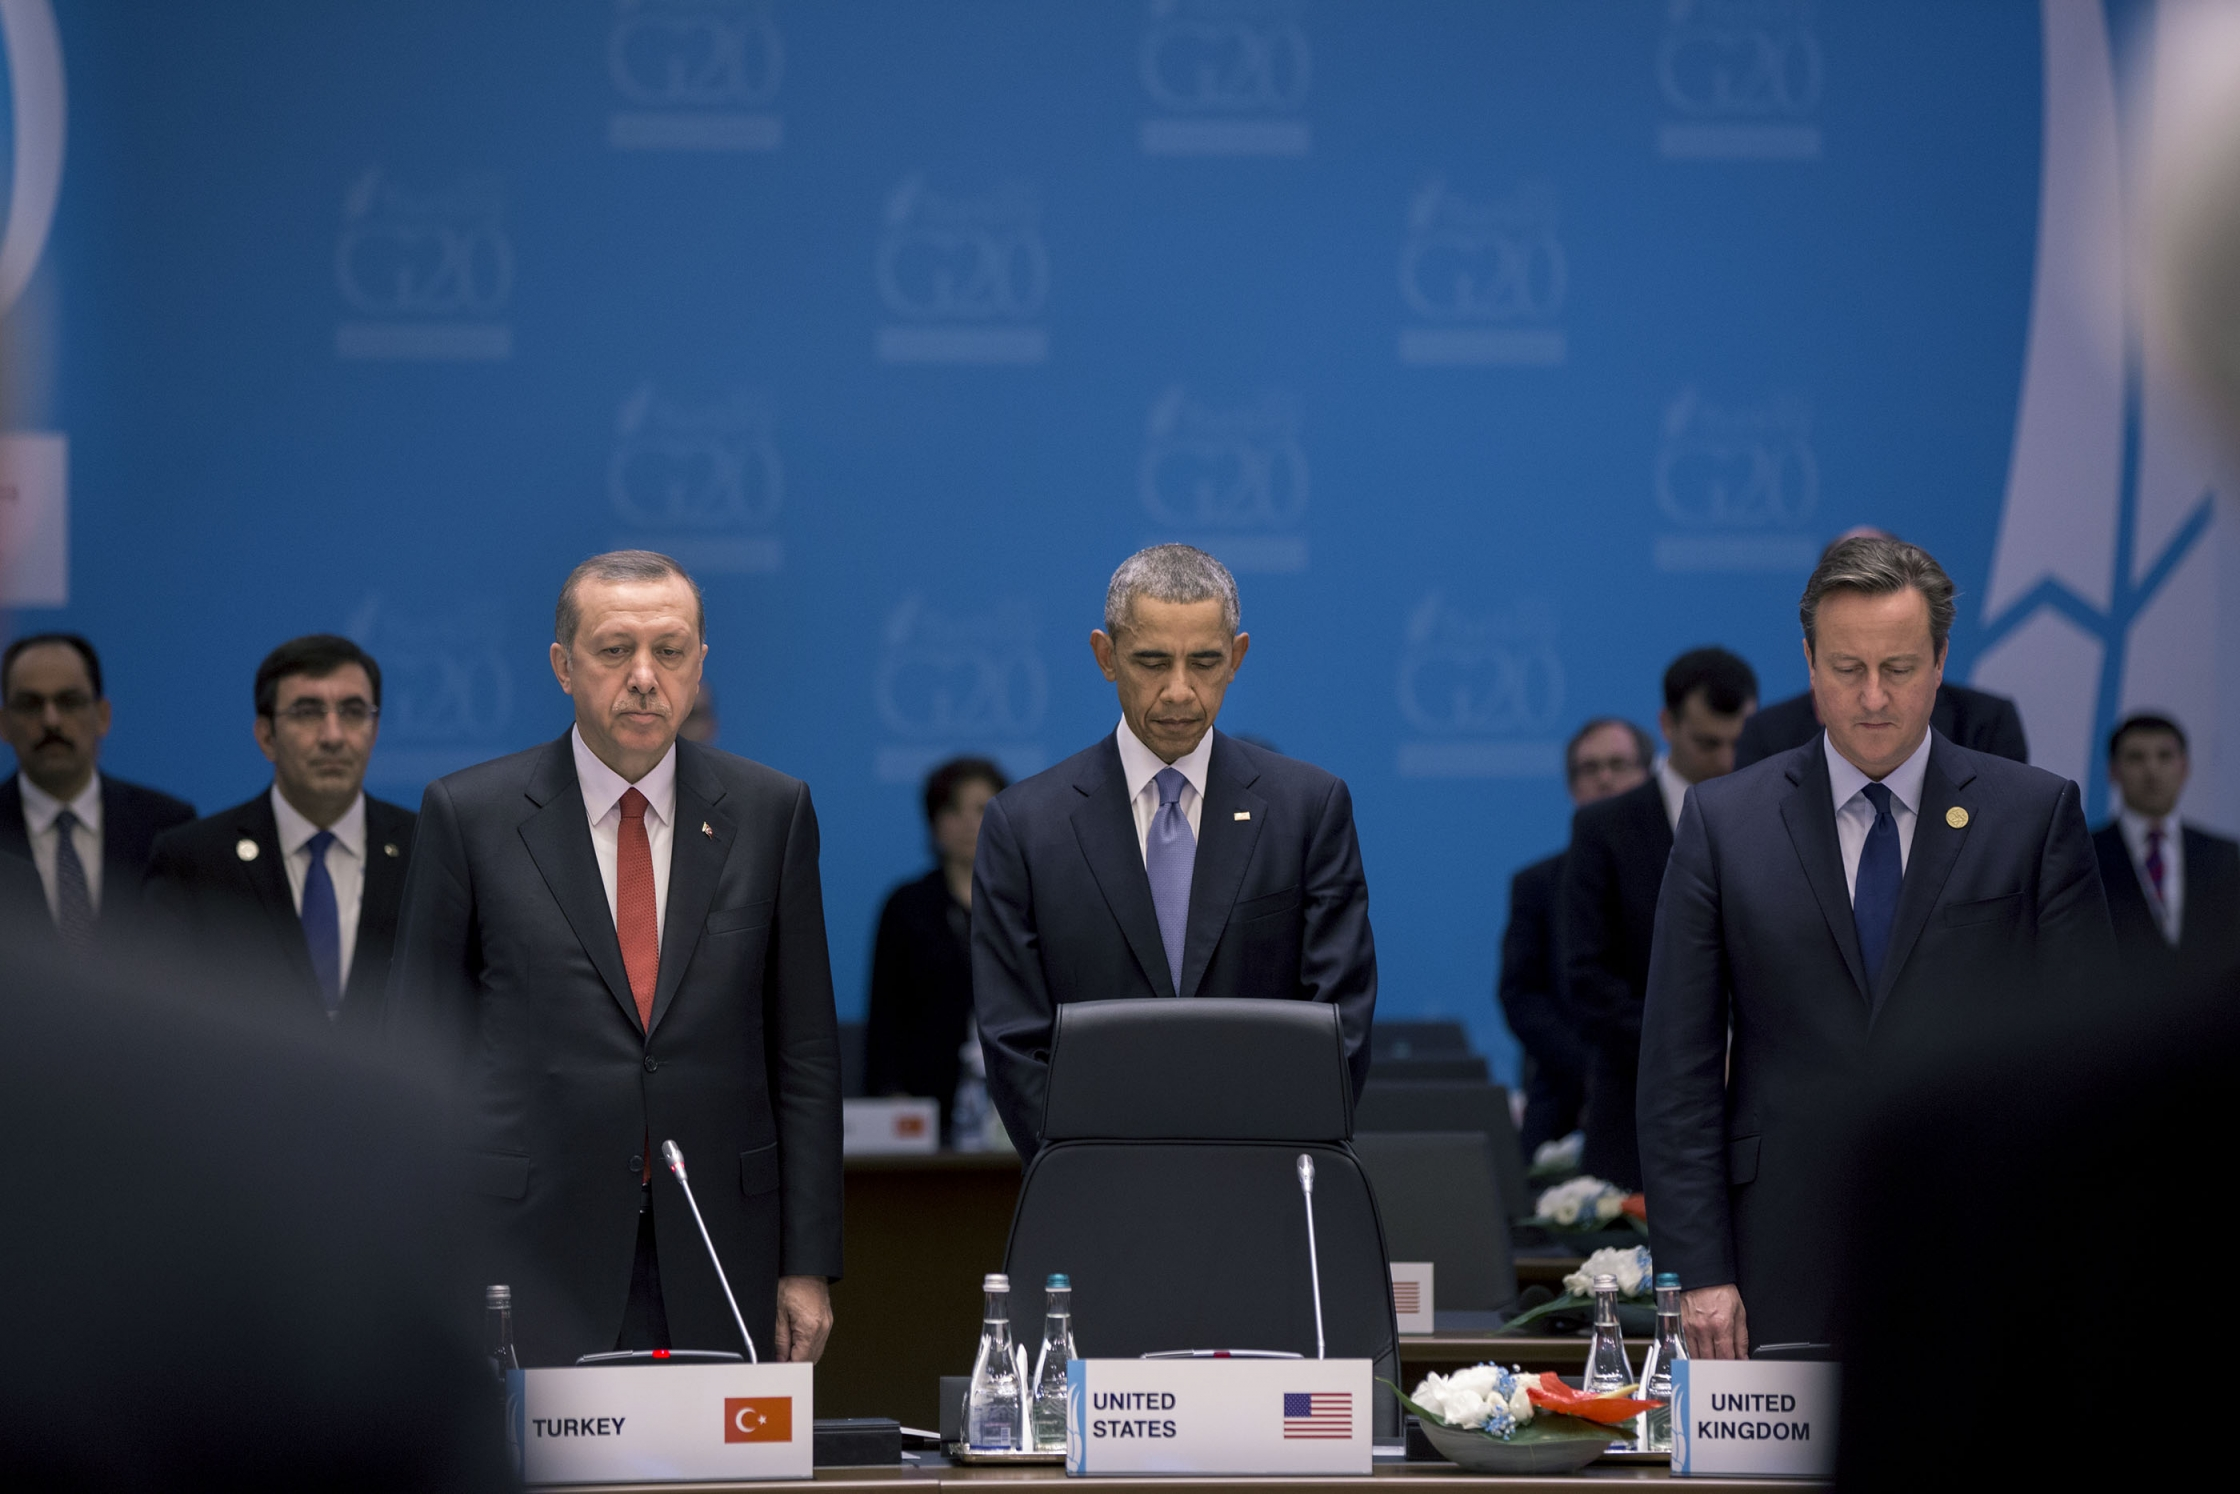 President Barack Obama, President Recep Tayyip Erdoğan Of Turkey And Prime Minister David Cameron Of The United Kingdom And The Other Members And Staff Of The G20 Summit, Observe A Moment Of Silence During Working Session One In Antalya, Turkey For The Victims Of The Terrorist Attacks In France, Sunday, Nov. 15, 2015. U.S. Government Work/White House Photo By Pete Souza